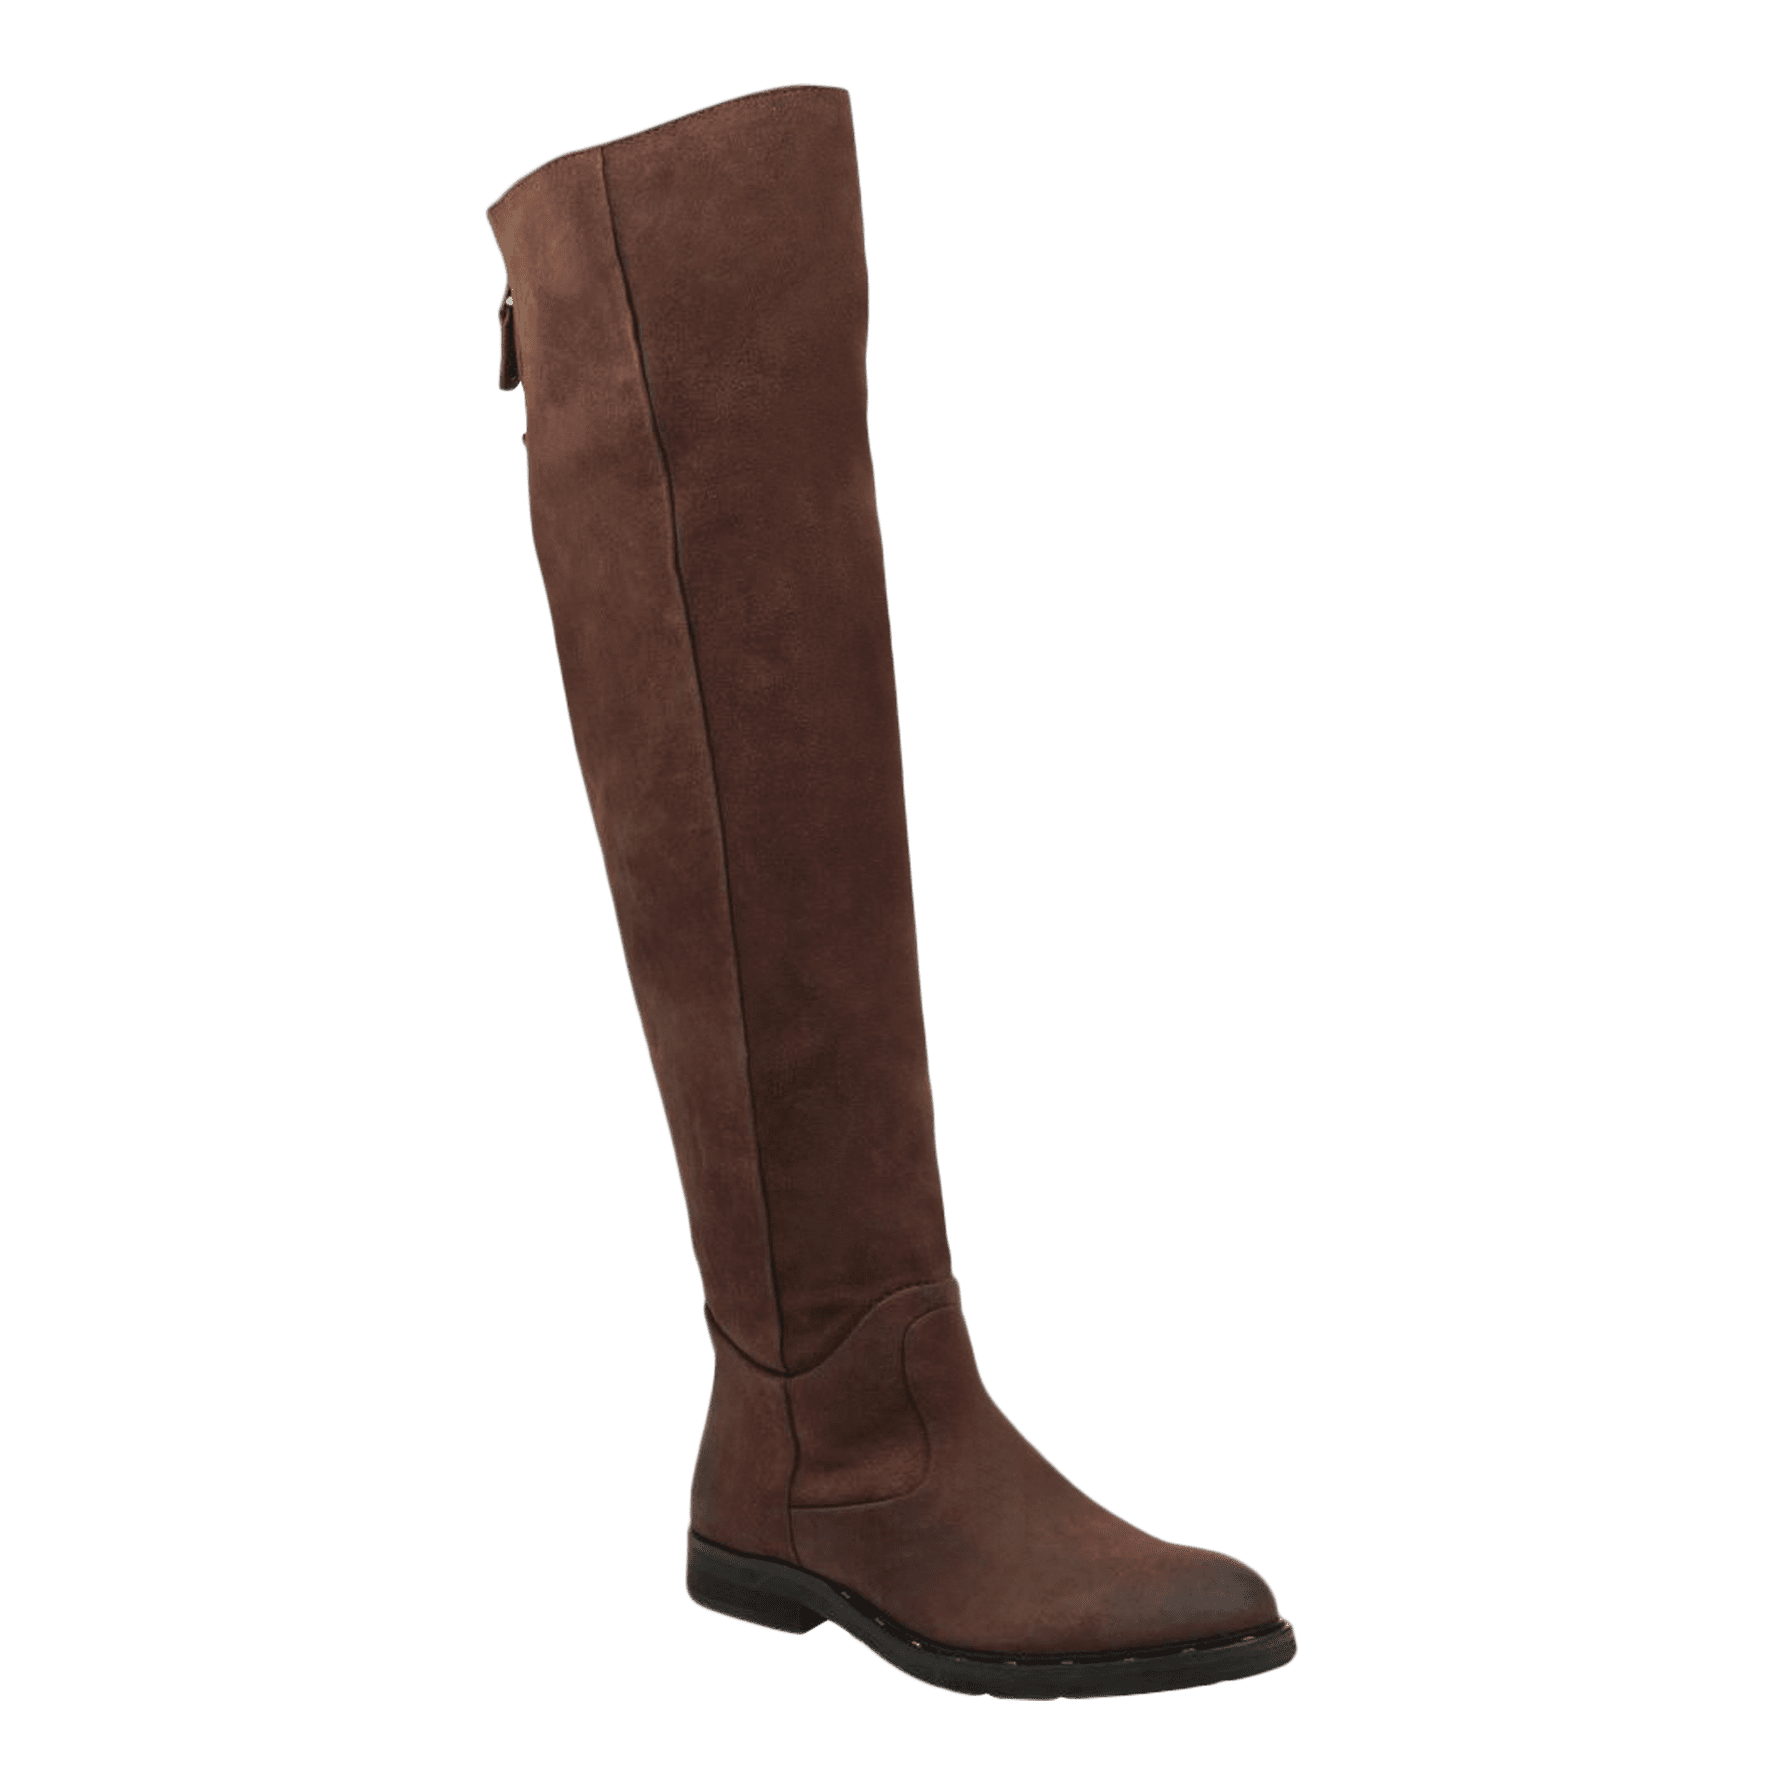 f4d2b00fc05 Womens over the knee boot steerage in medium brown